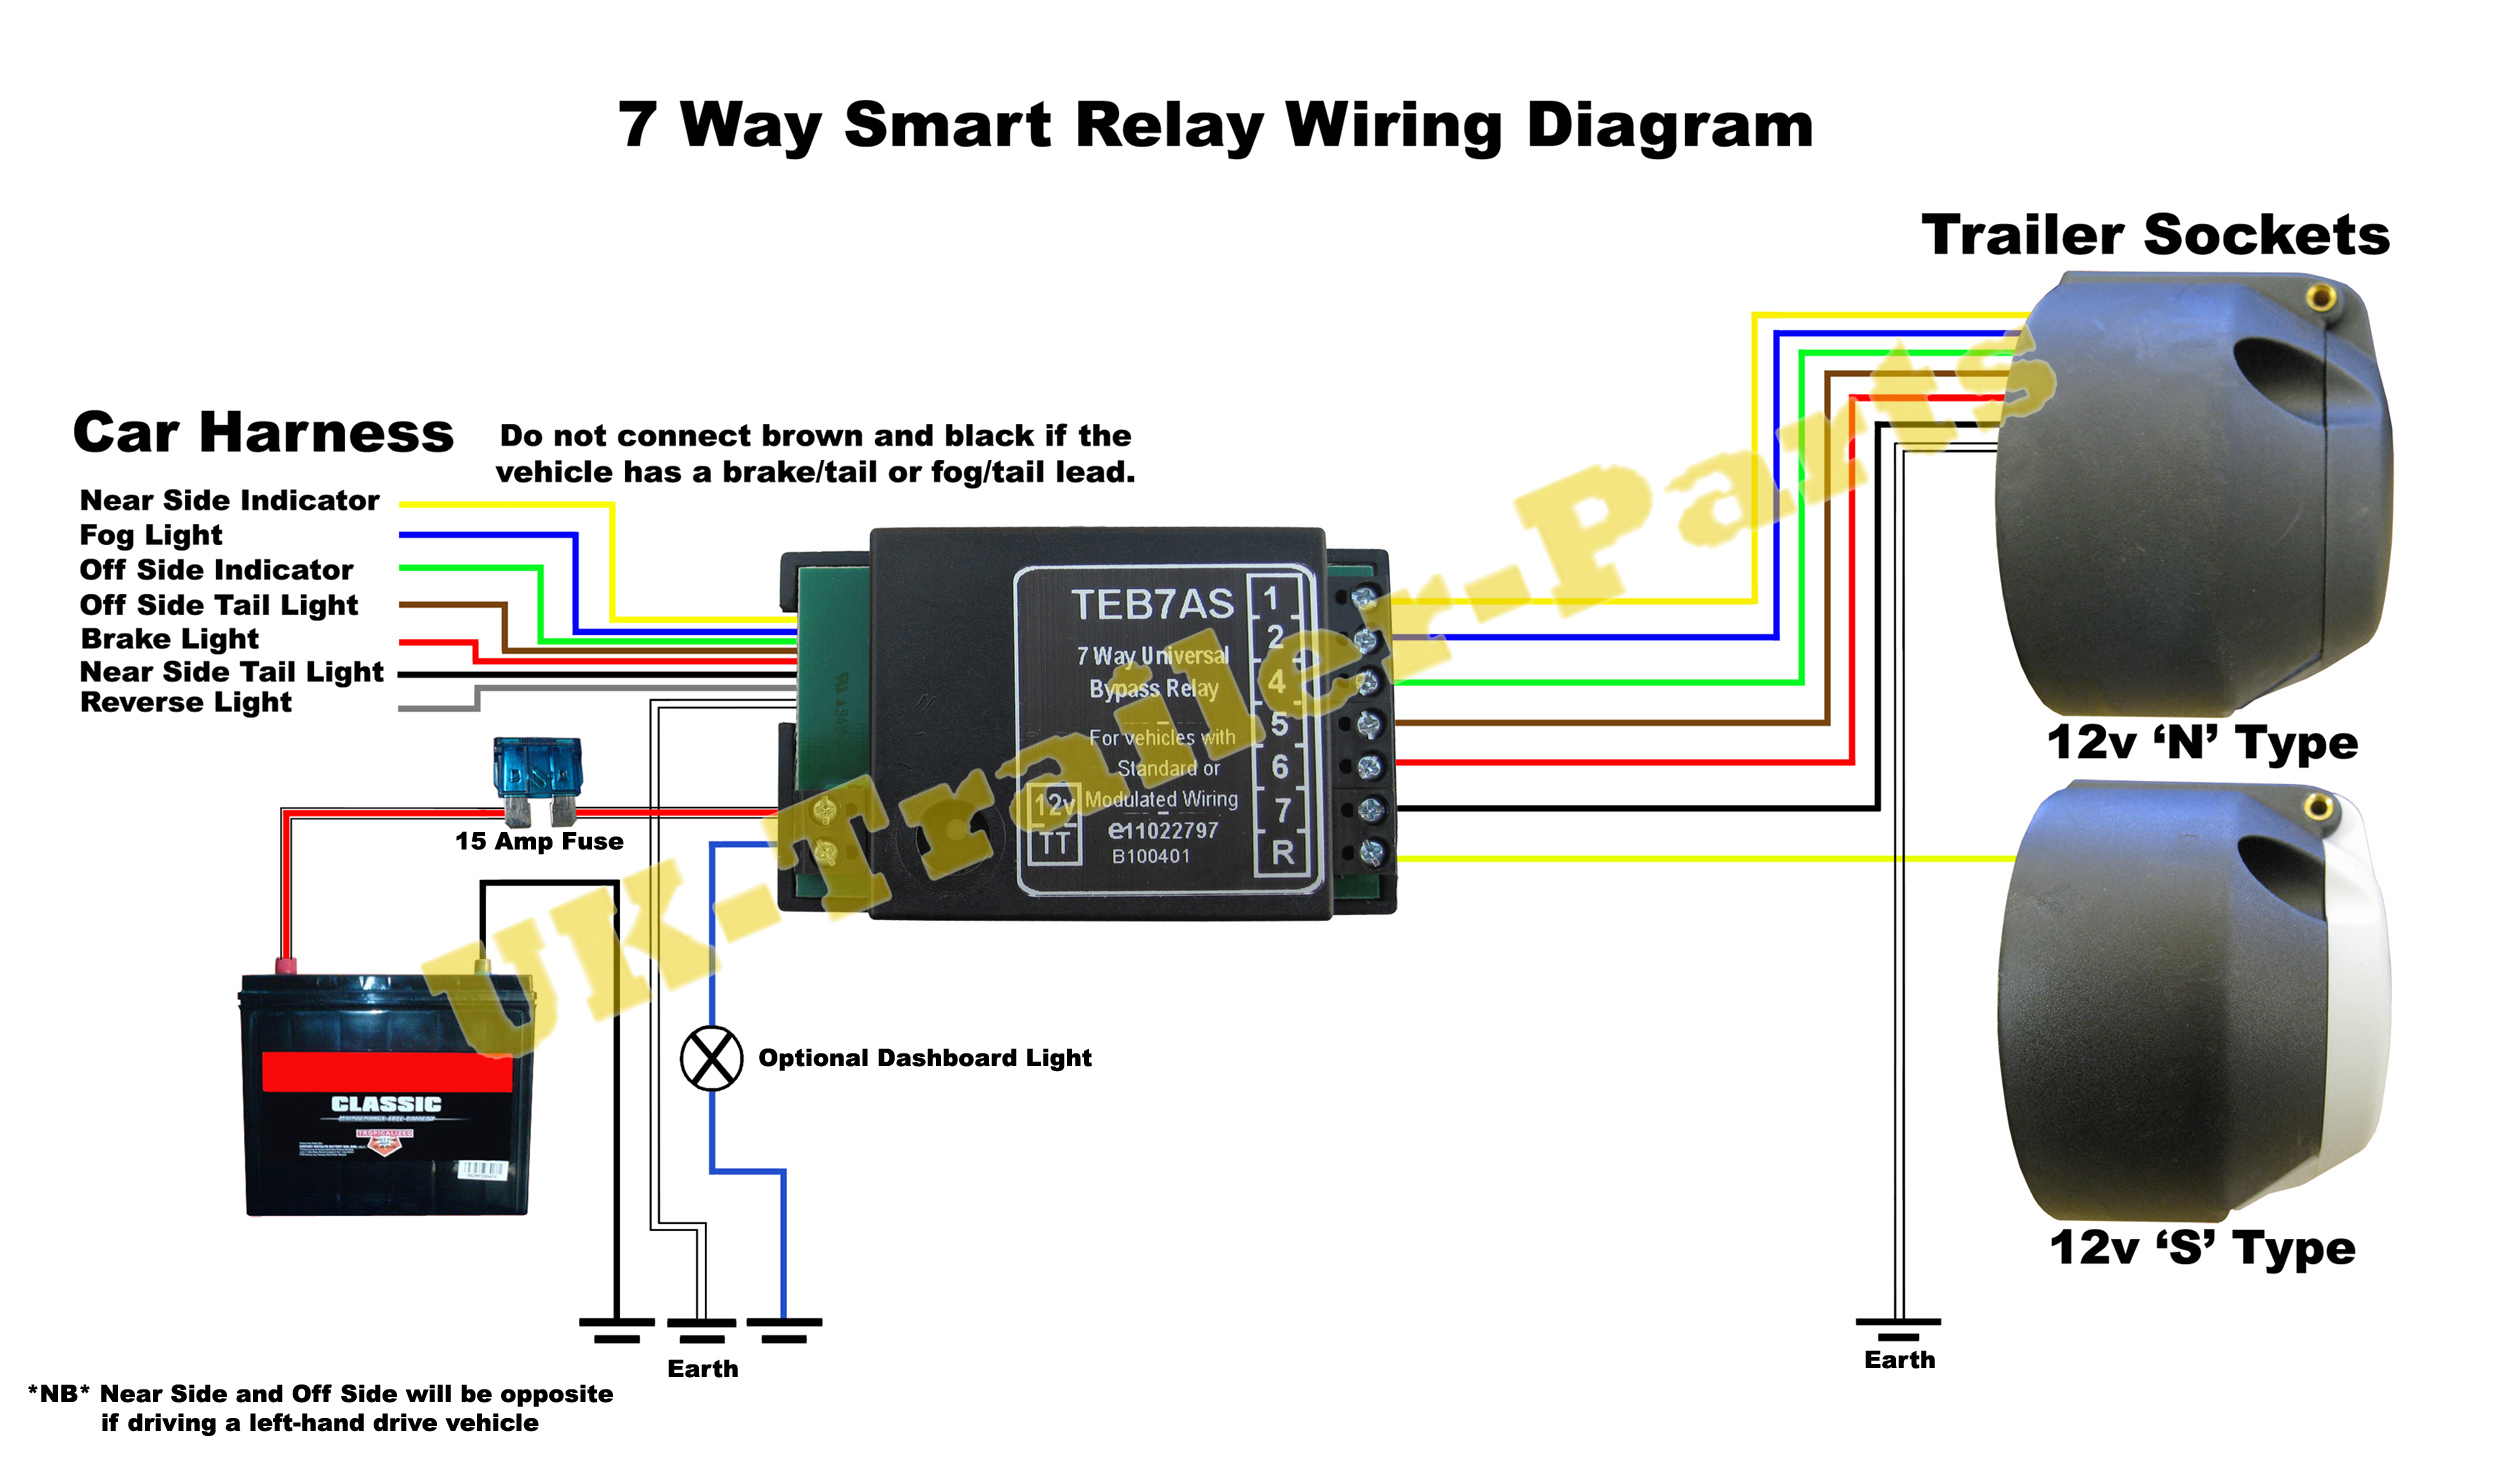 4 pin to 7 pin trailer wiring diagram 4 pin to 7 pin trailer 4 Pin Trailer Wiring Harness 7 pin wiring harness schematic facbooik com 4 pin to 7 pin trailer wiring diagram hitch 4 pin trailer wiring harness